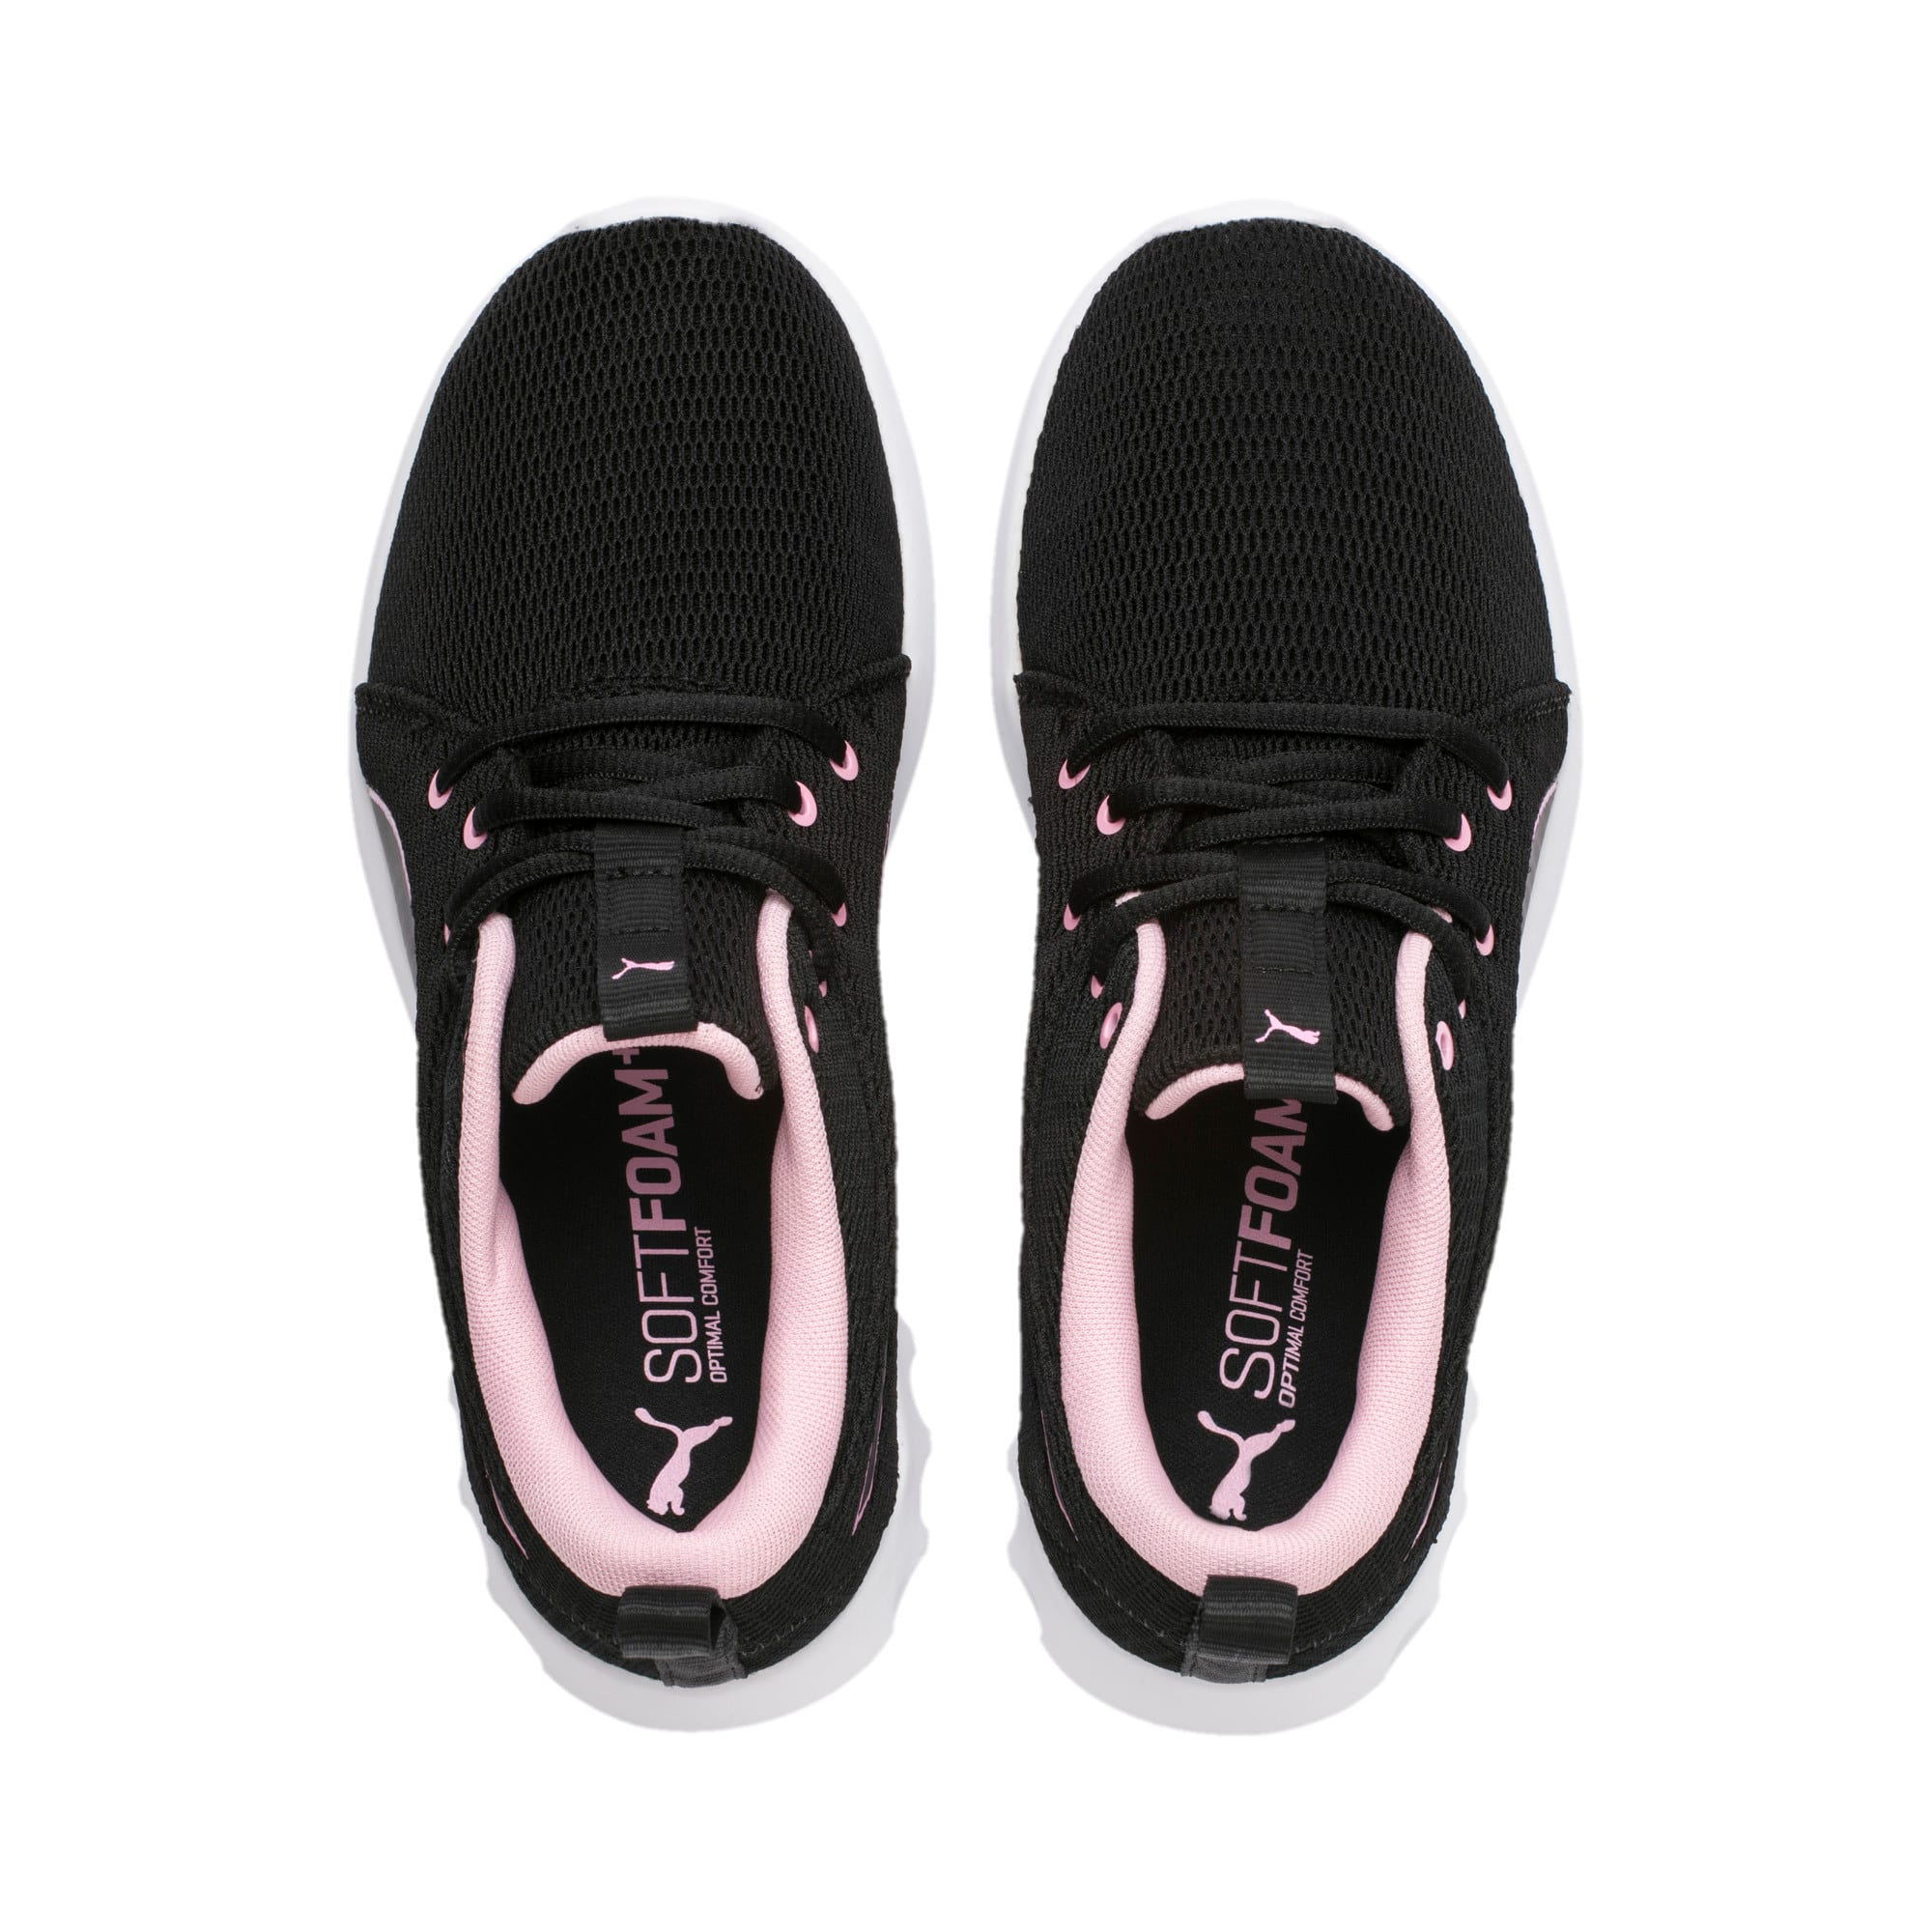 special section wholesale outlet price reduced Carson 2 New Core Women's Training Shoes